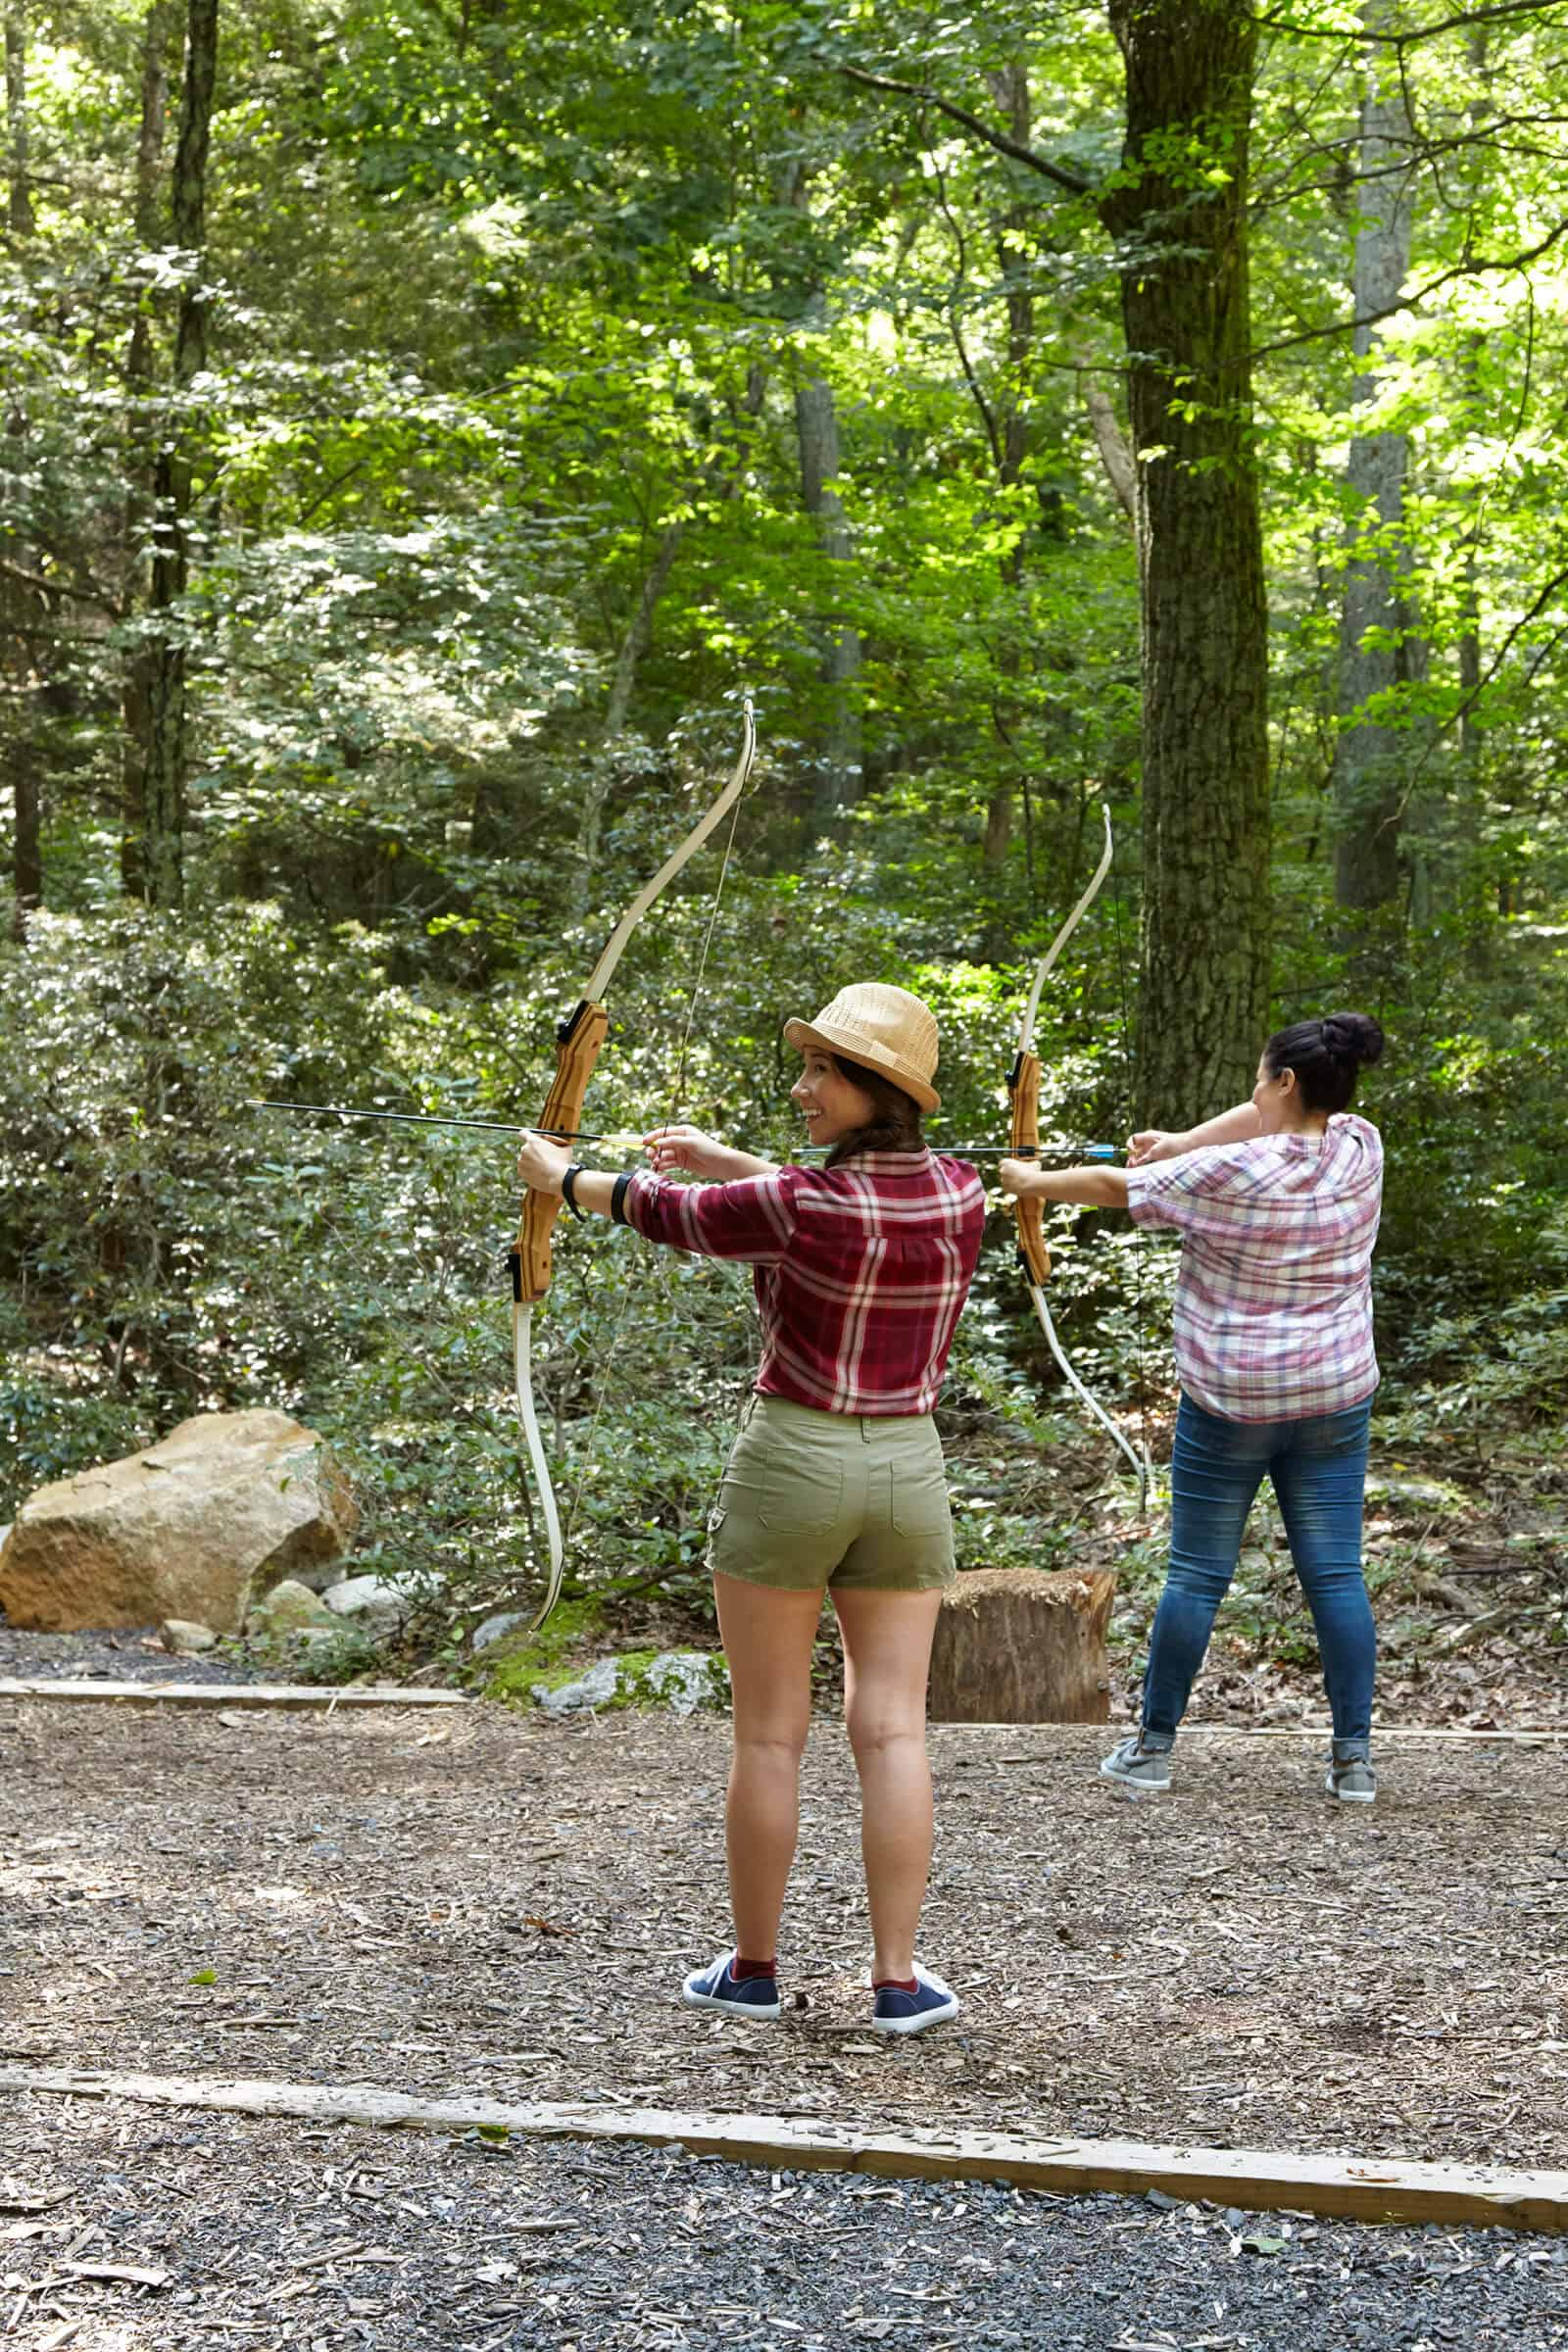 Archery - Mother's Day Getaway - Mohonk